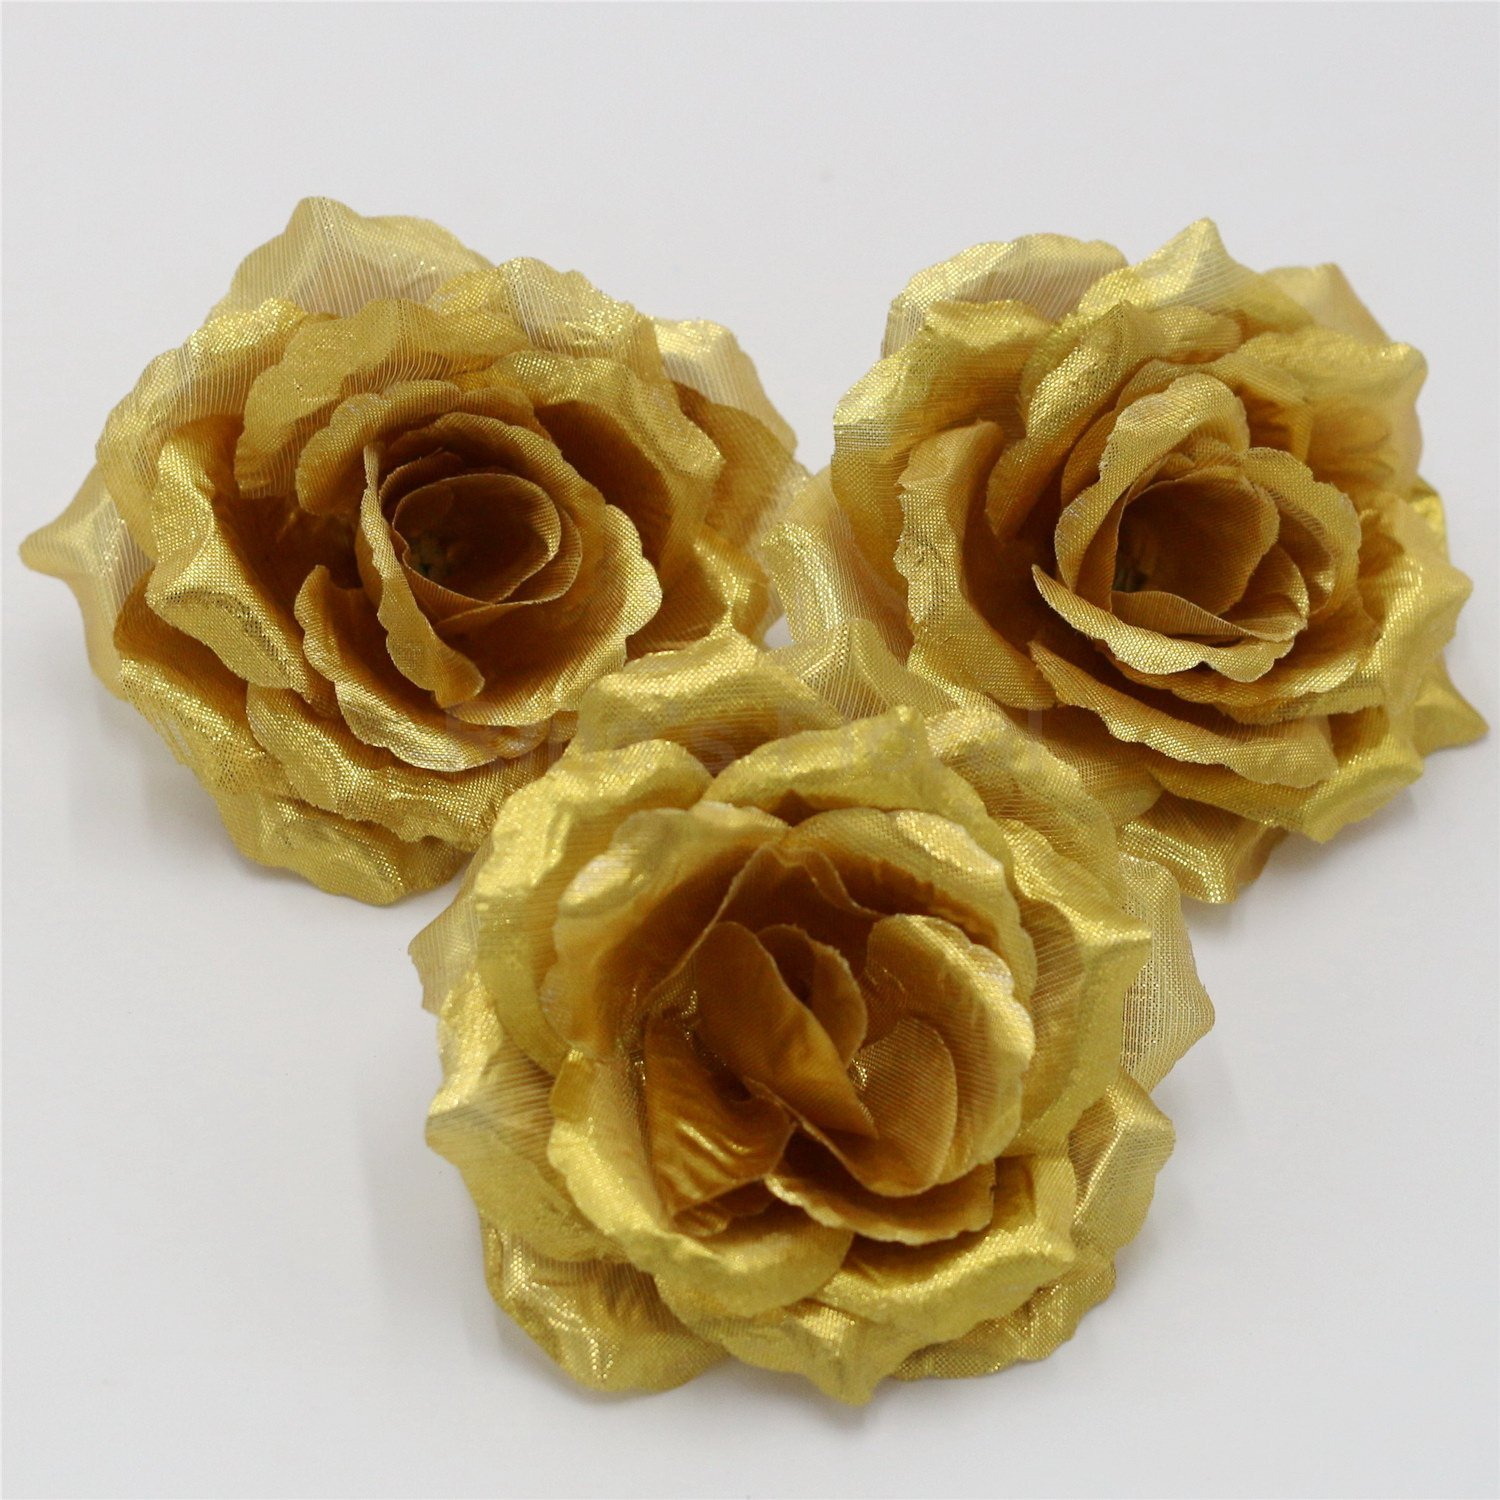 Cheap bulk silk flower heads find bulk silk flower heads deals on get quotations silk flowers wholesale 100 artificial silk rose heads bulk flowers 10cm for flower wall kissing balls mightylinksfo